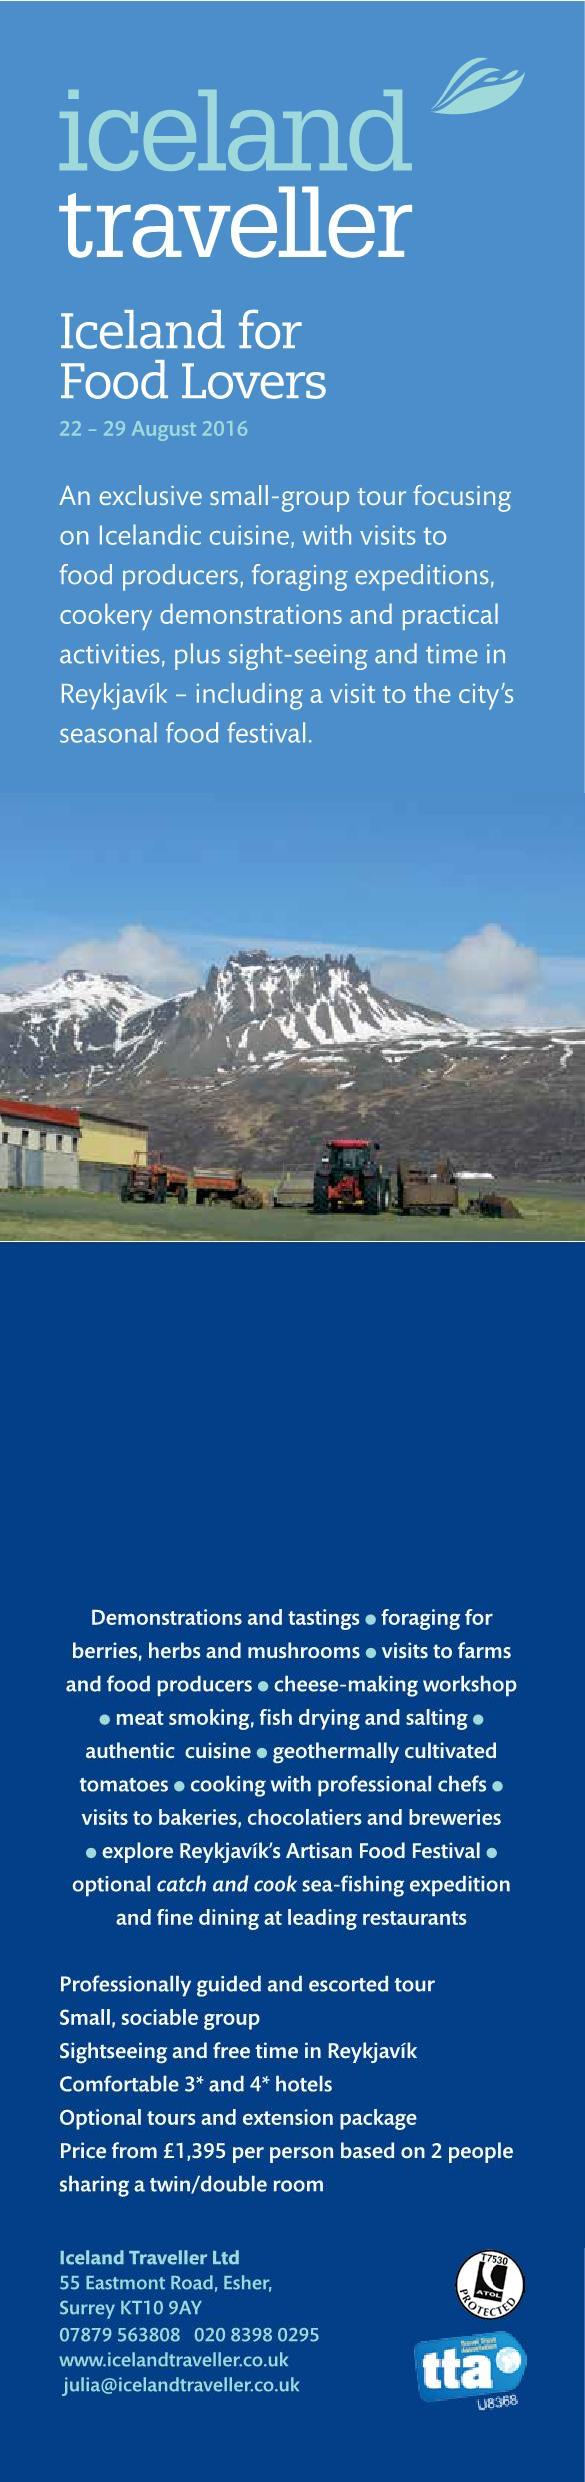 Iceland for Food Lovers Brochure_1-2